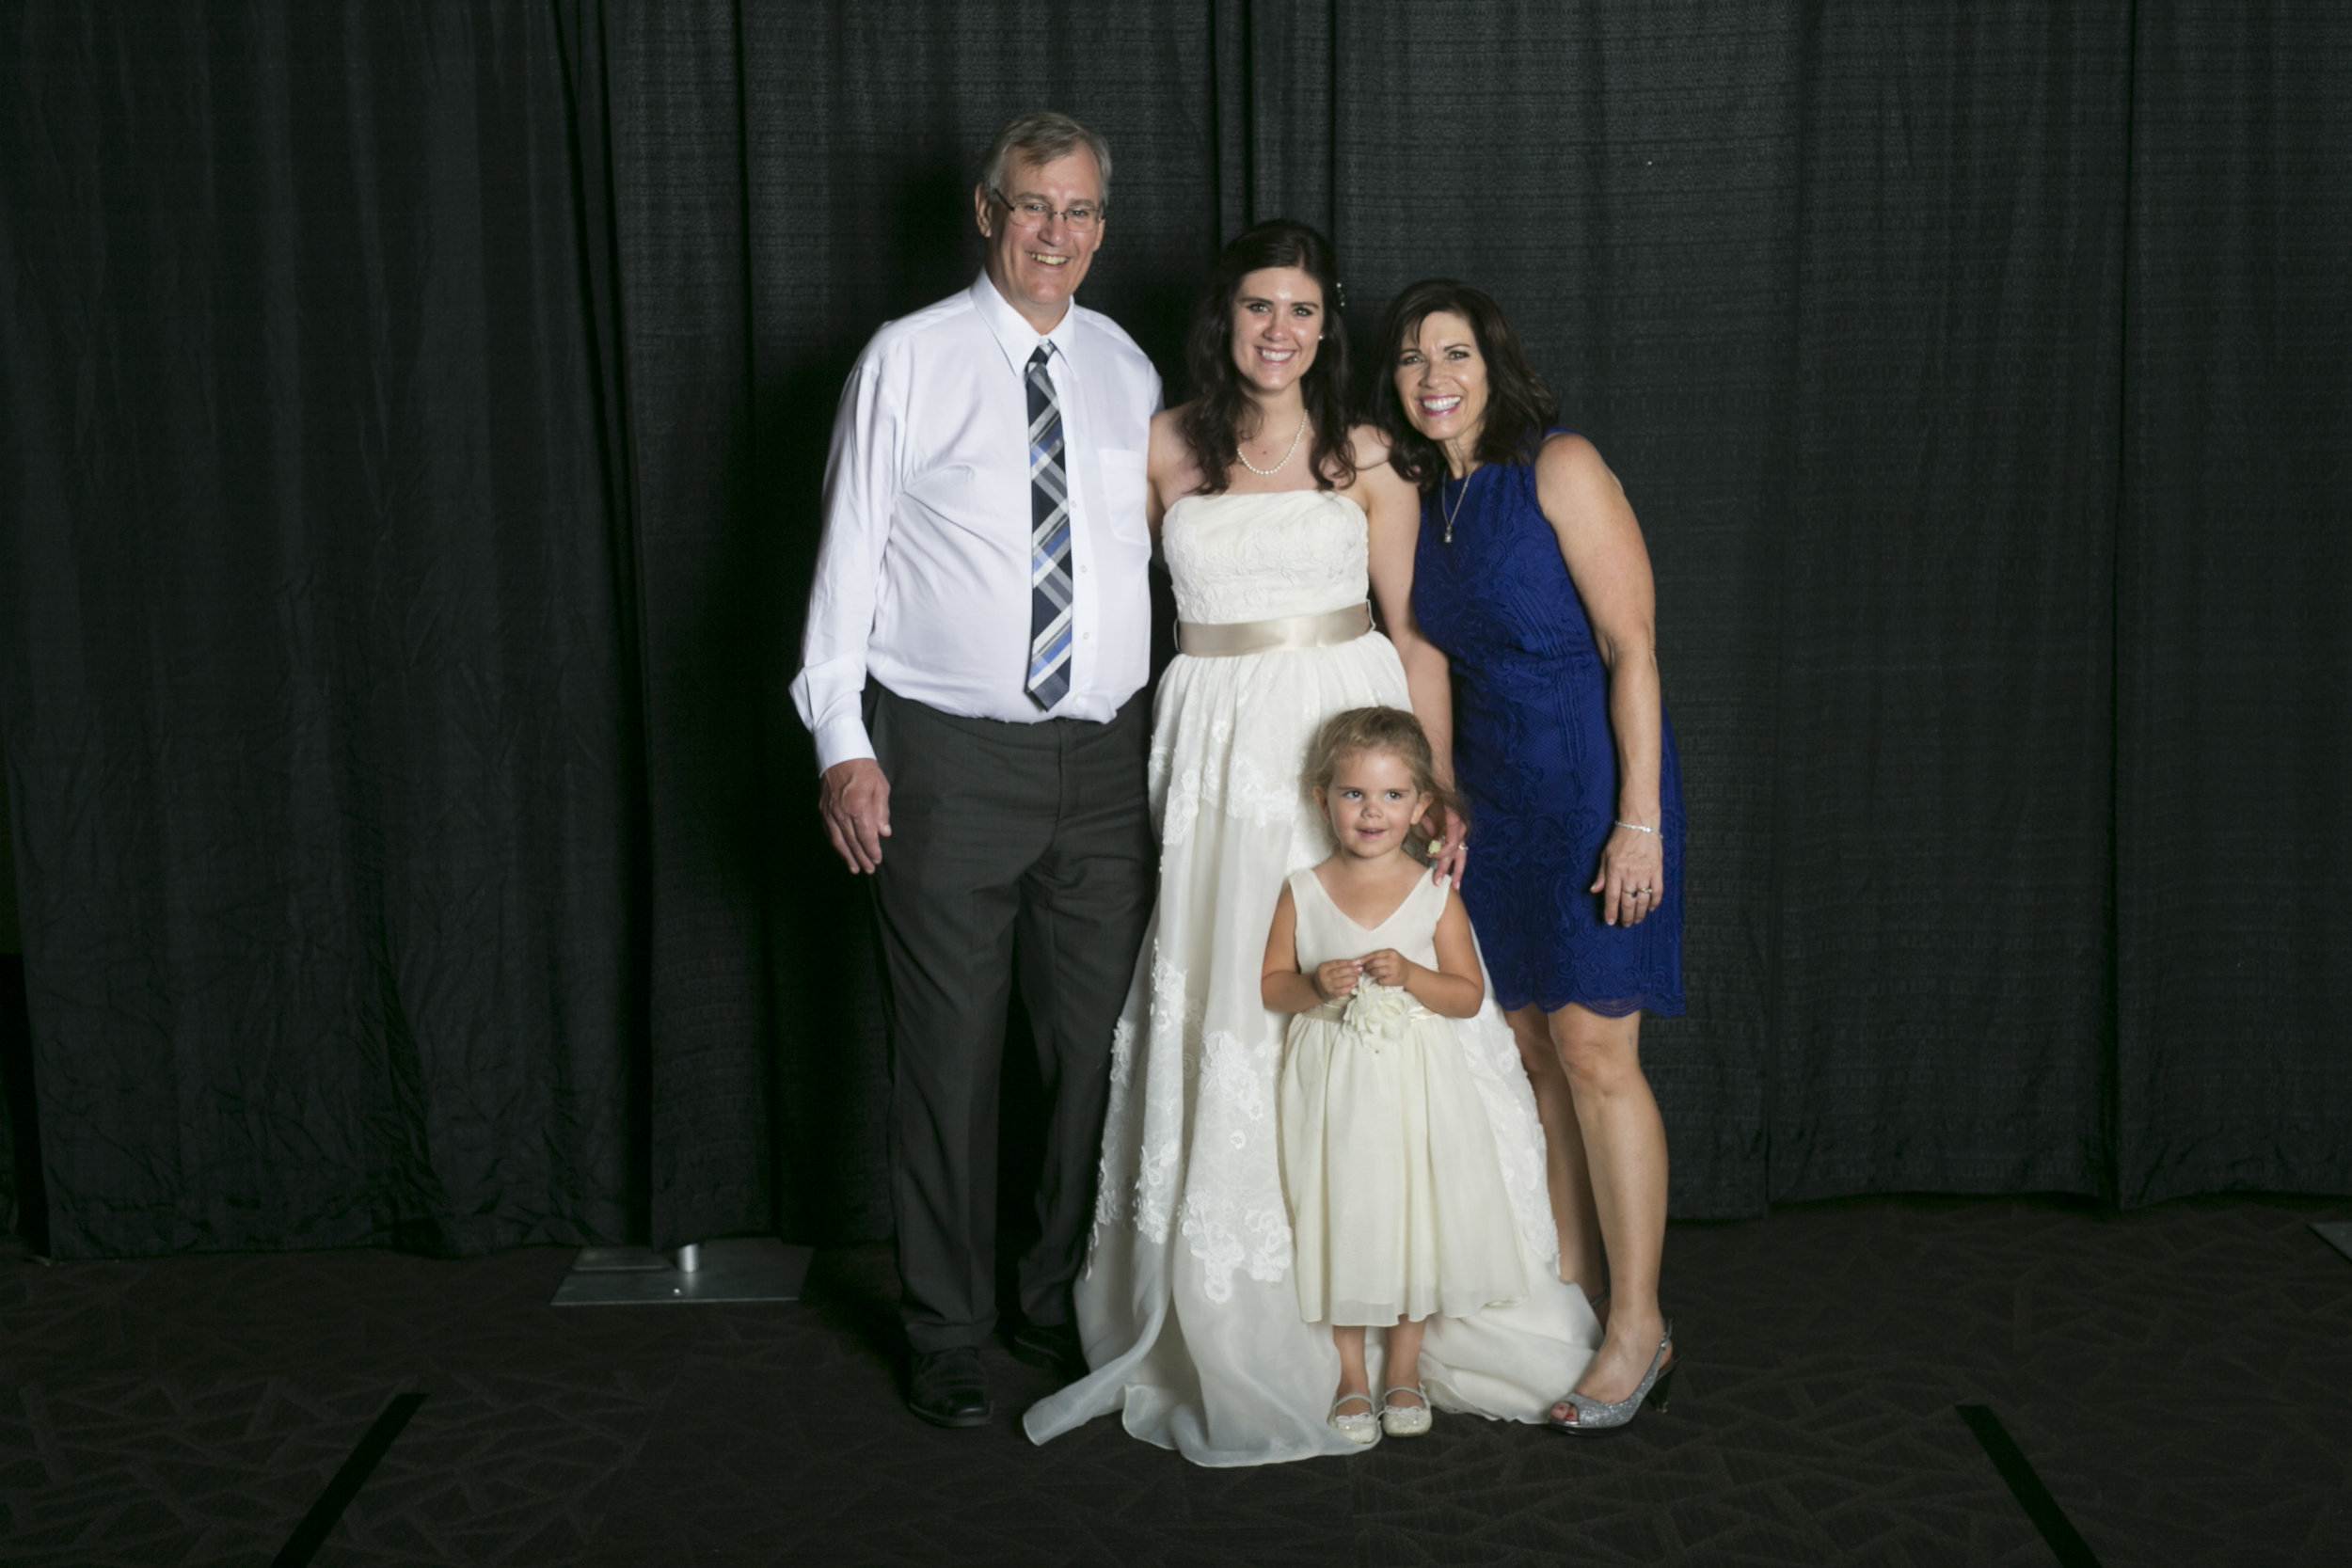 wedding photo booth-118.jpg